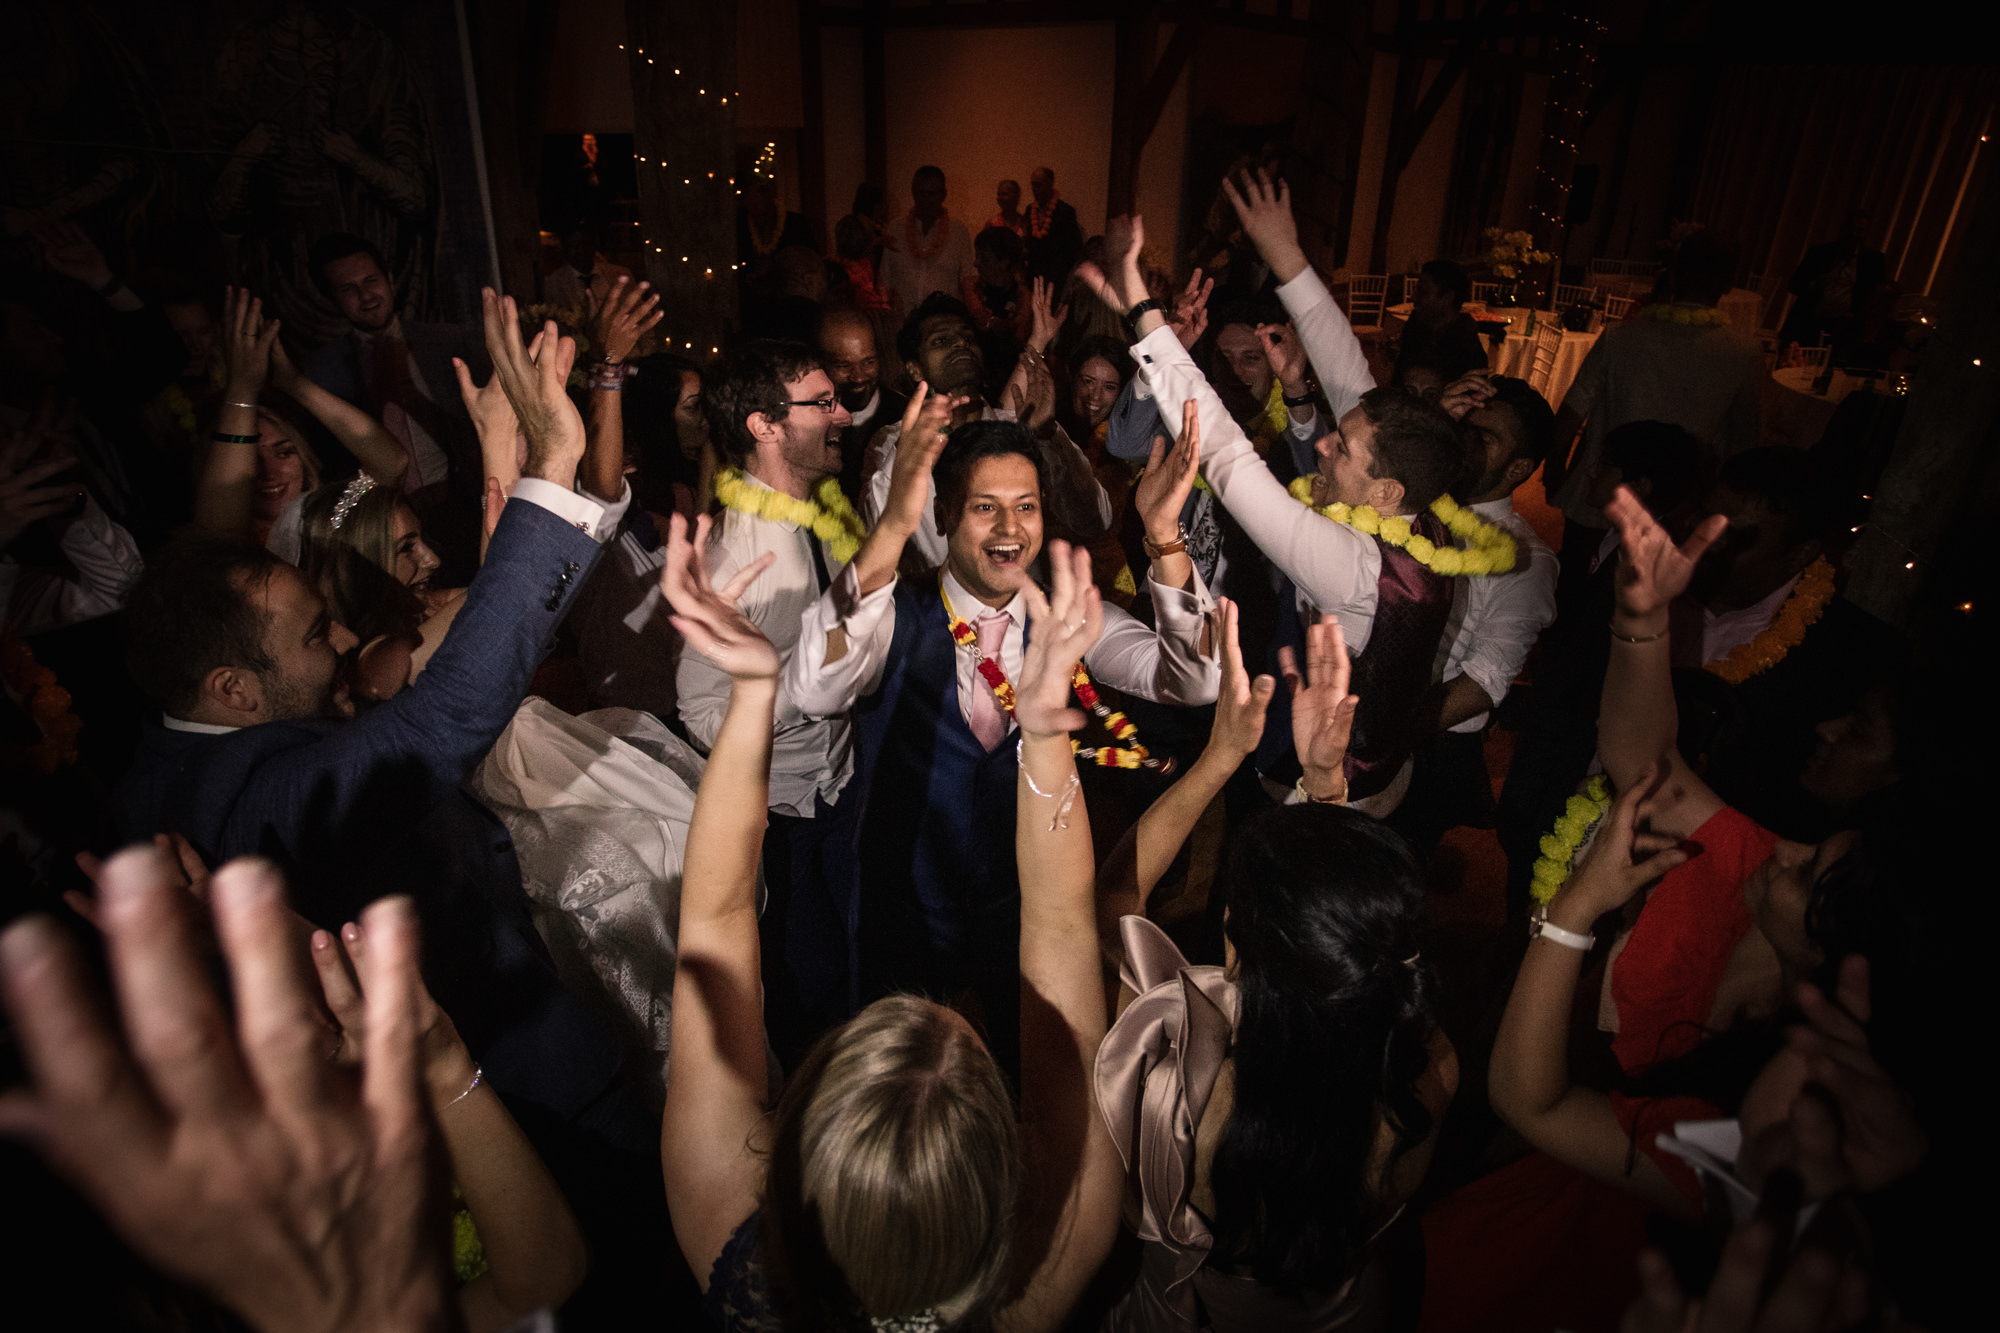 Groom dancing in the middle of guests at wedding reception party